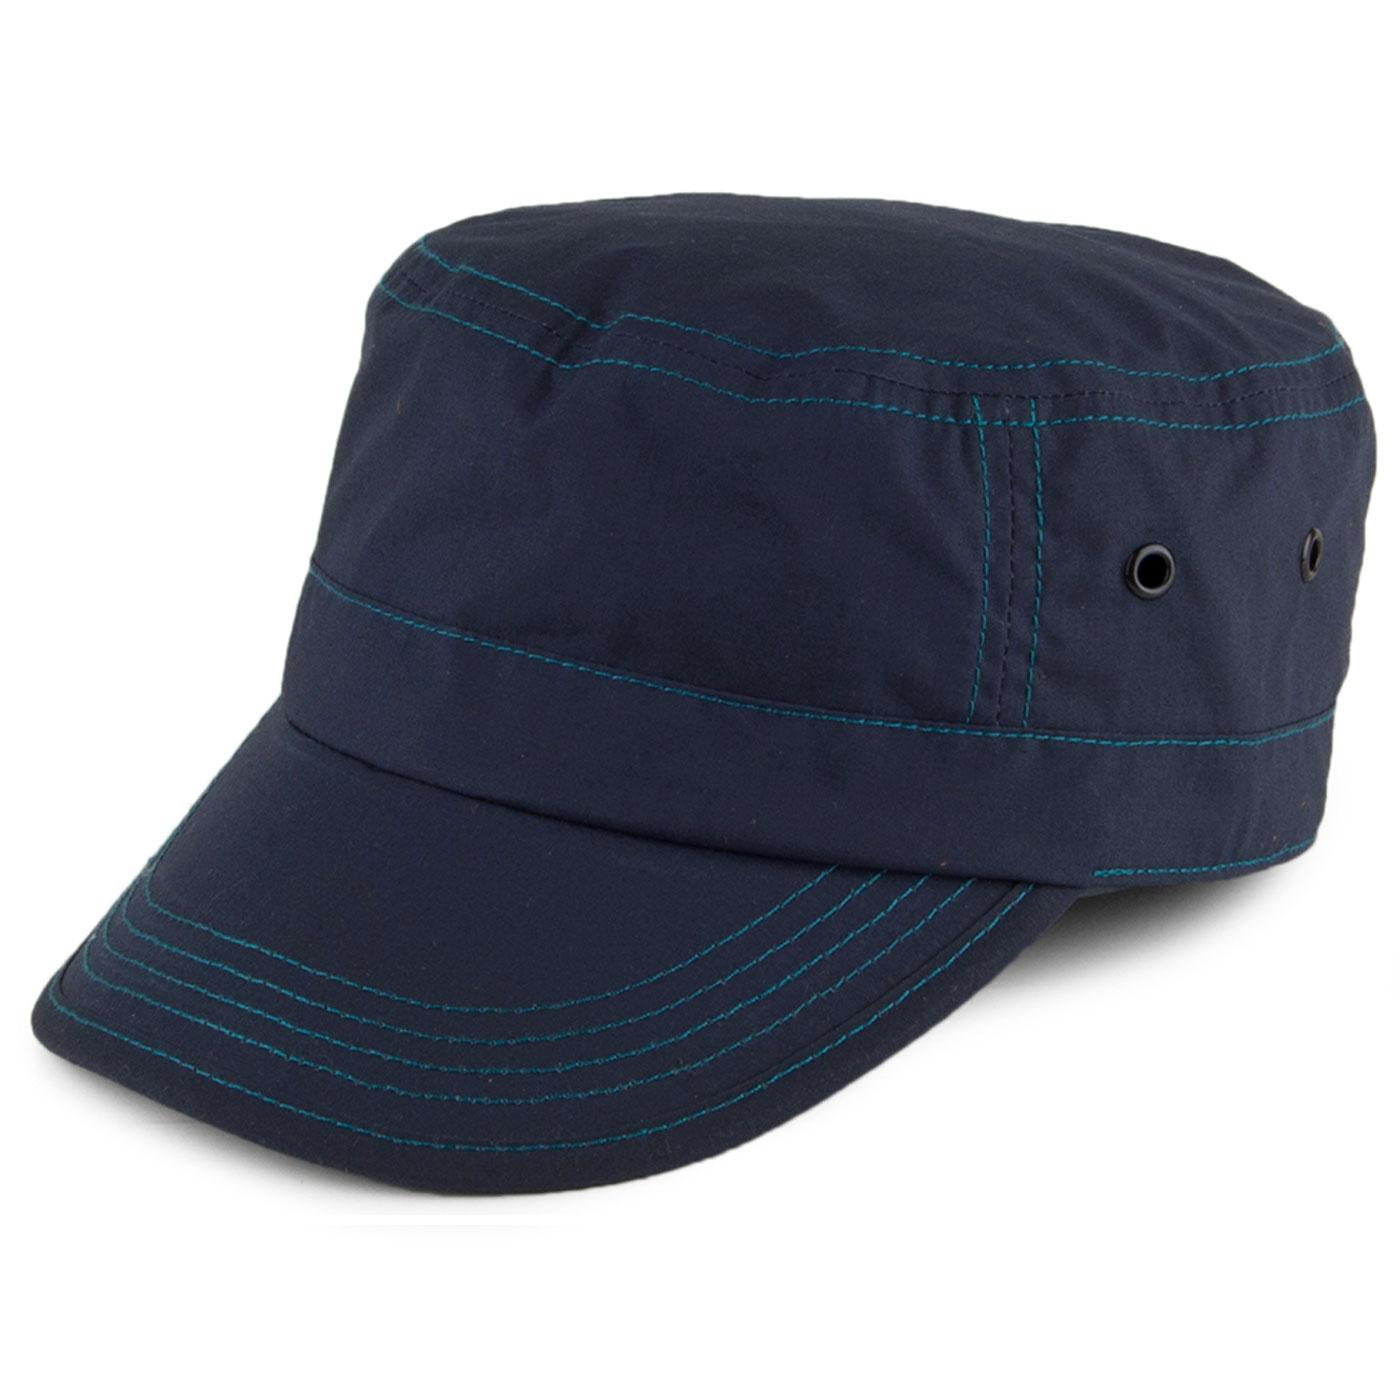 FAILSWORTH Military Dry Wax Train Driver Cap NAVY